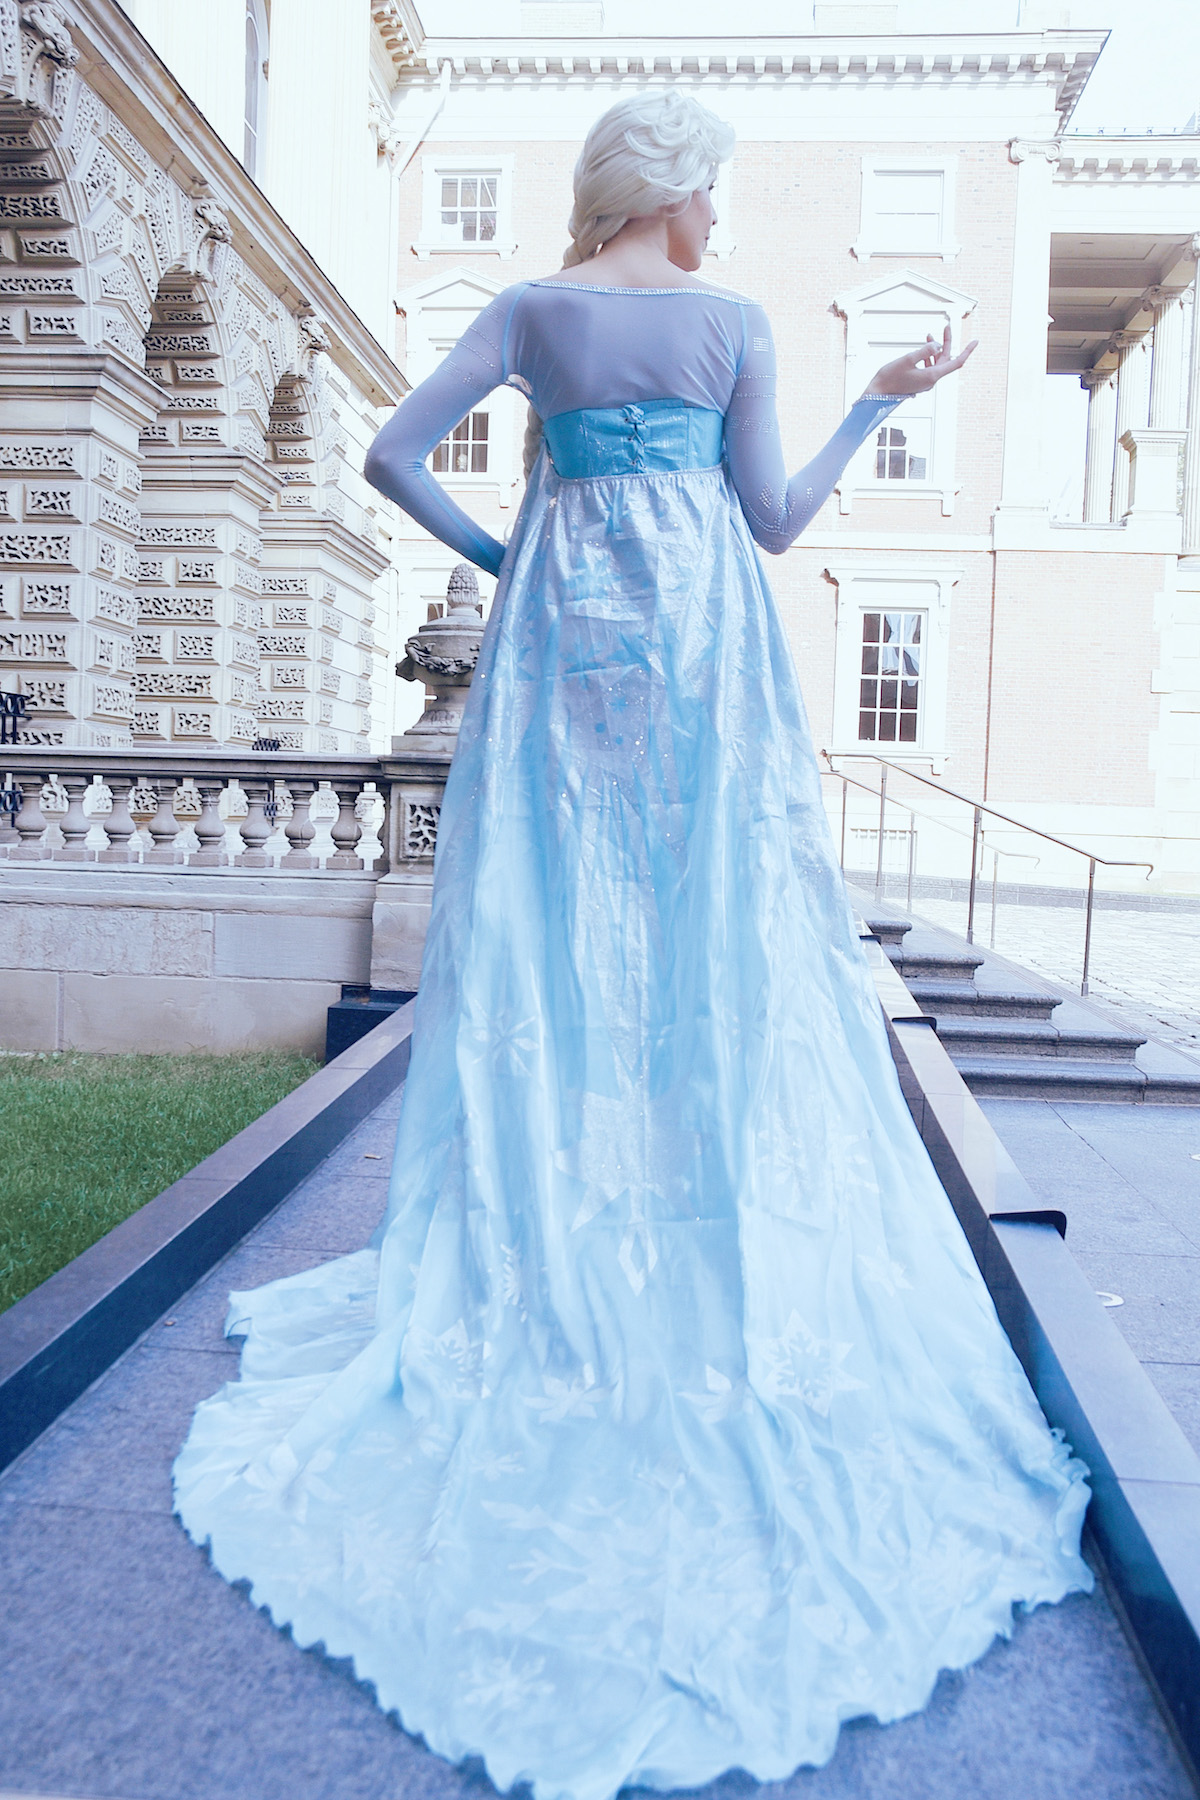 Elsa is facing away from the camera, ready to Let it Go